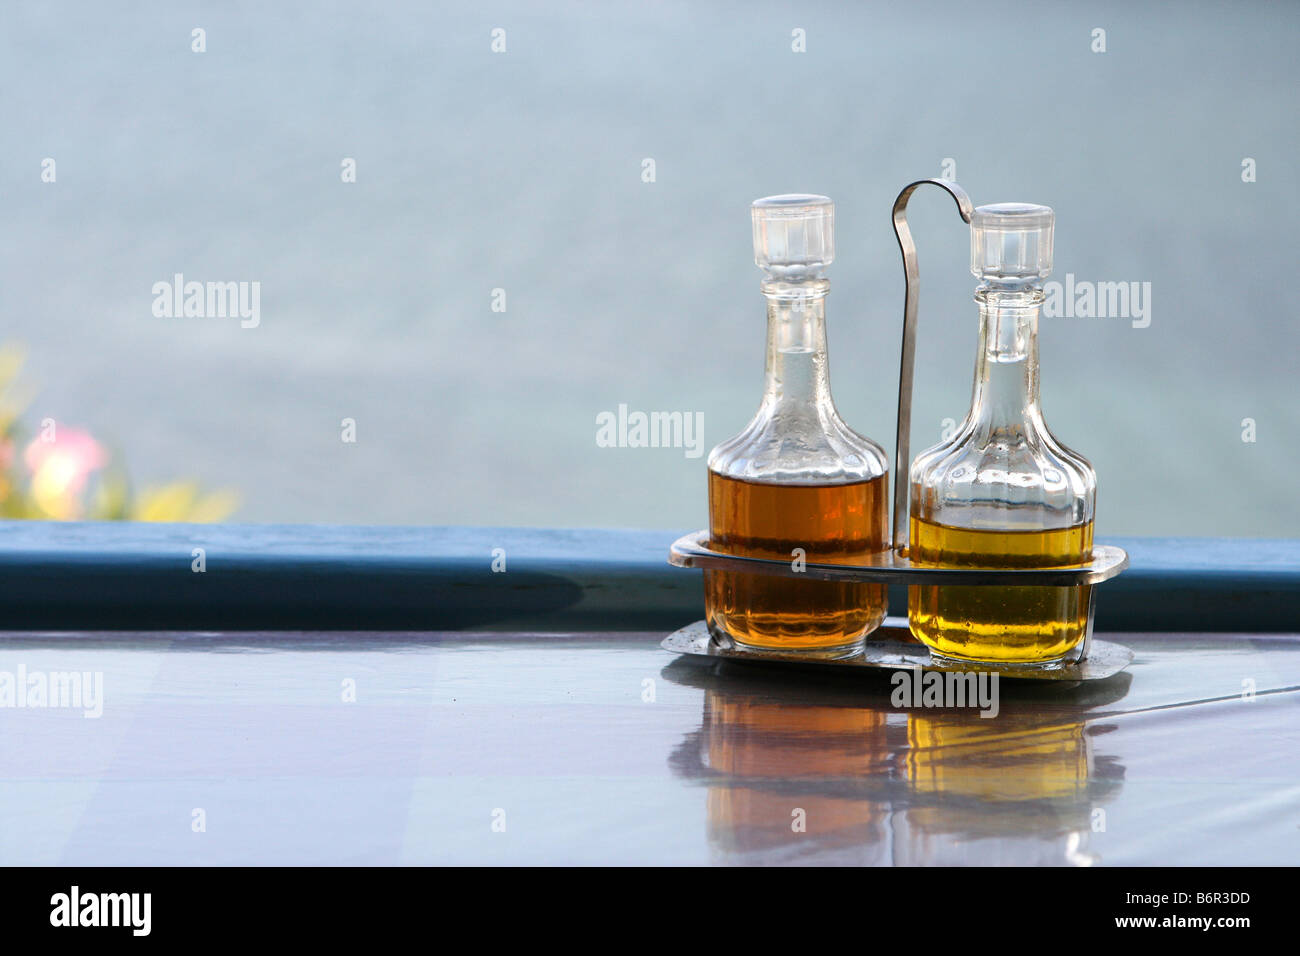 salad and food sauce bottles winegar and oil detail from restaurant - Stock Image